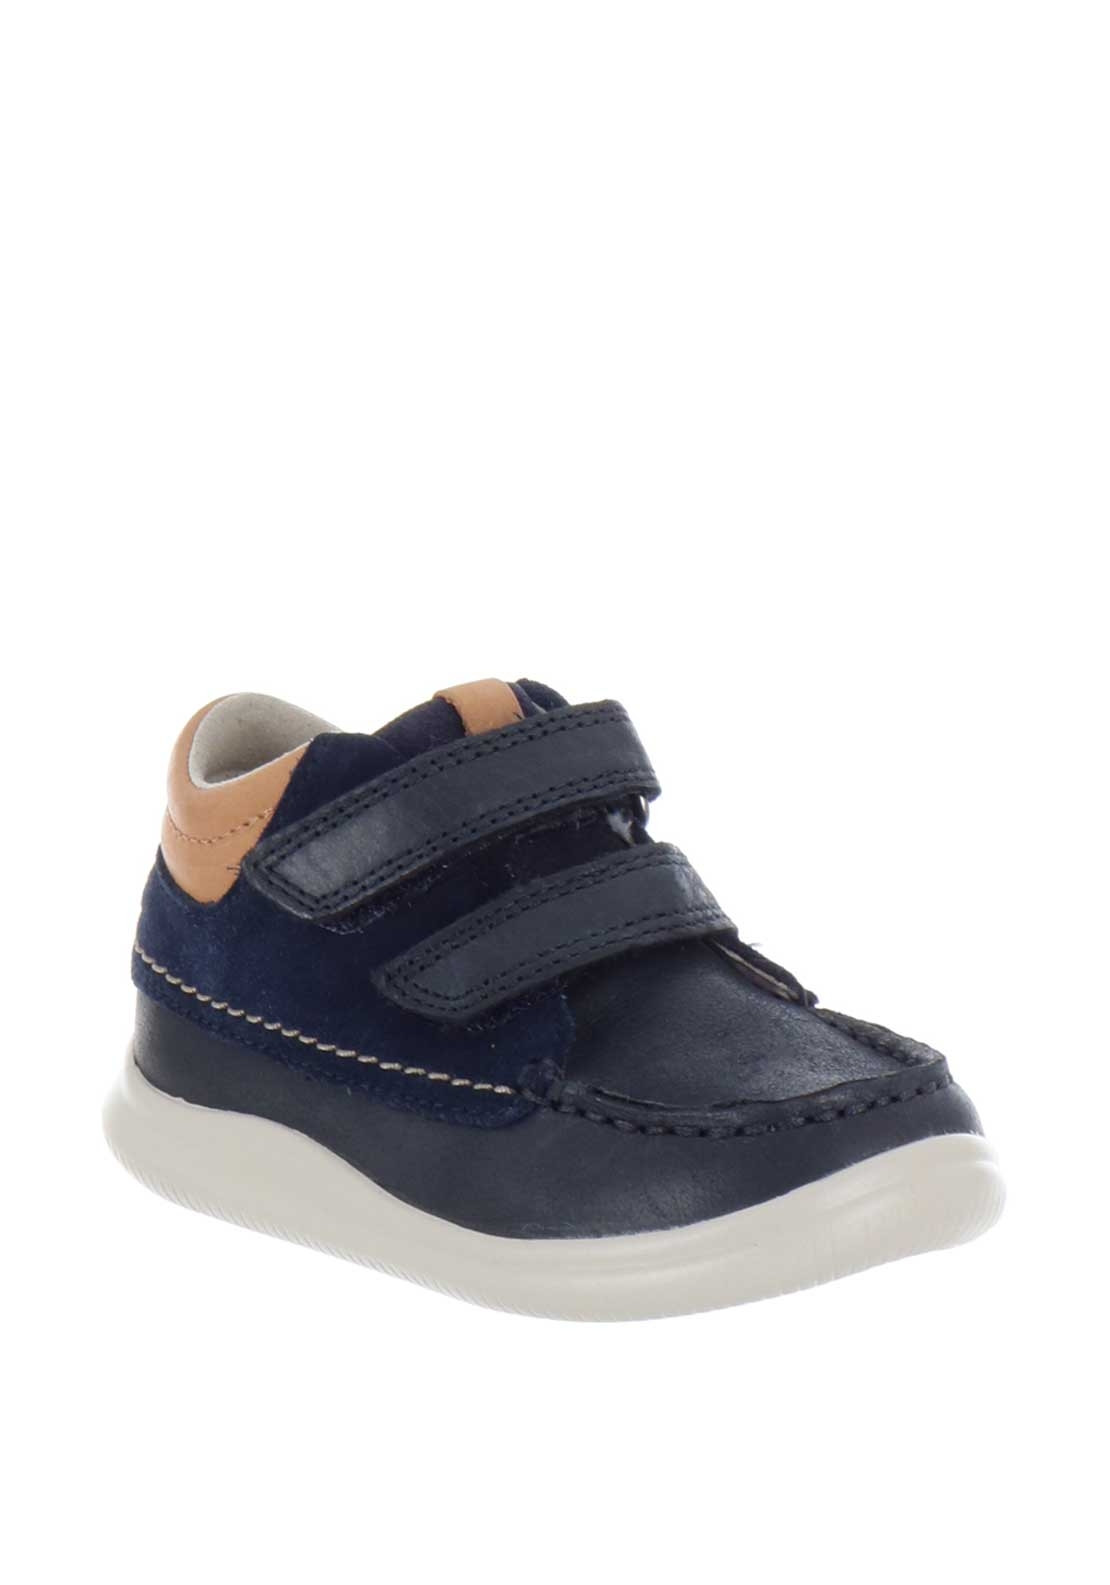 Clarks Boys Comet Moon Leather Boots